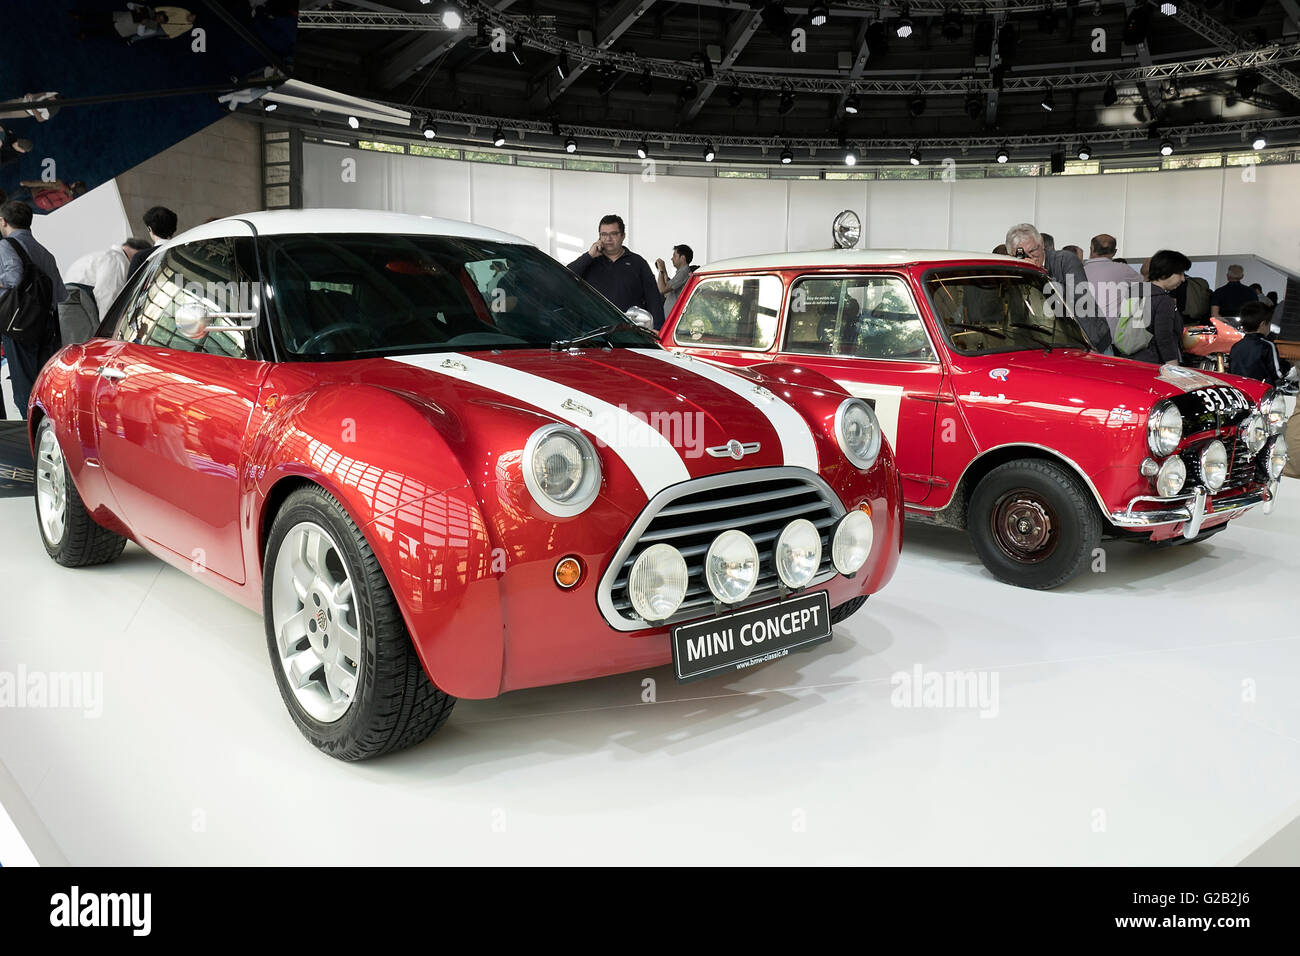 Mini Cooper recreation on display with an original BMC Mini Cooper at Villa Erbe concours Como Italy. - Stock Image